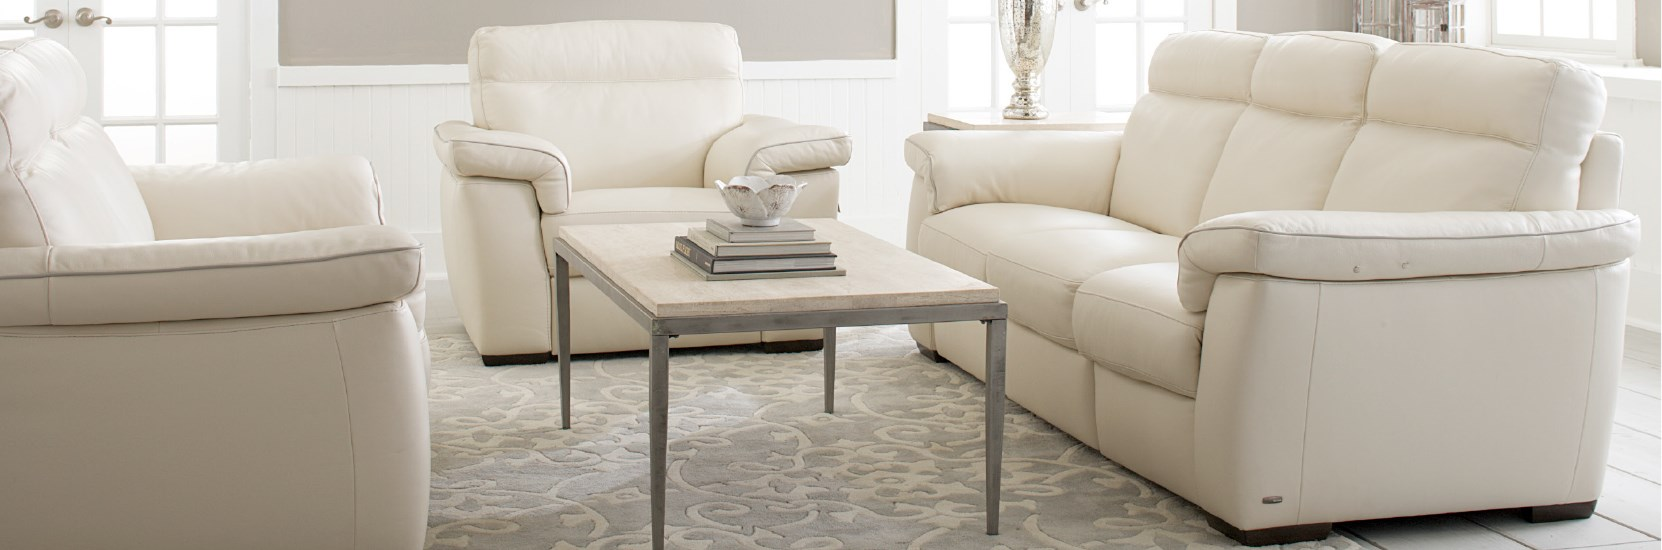 Florida S Premier Living Room Furniture Store Baer S Furniture Ft Lauderdale Ft Myers Orlando Naples Miami Florida Boca Raton Palm Beach Melbourne Jacksonville Sarasota